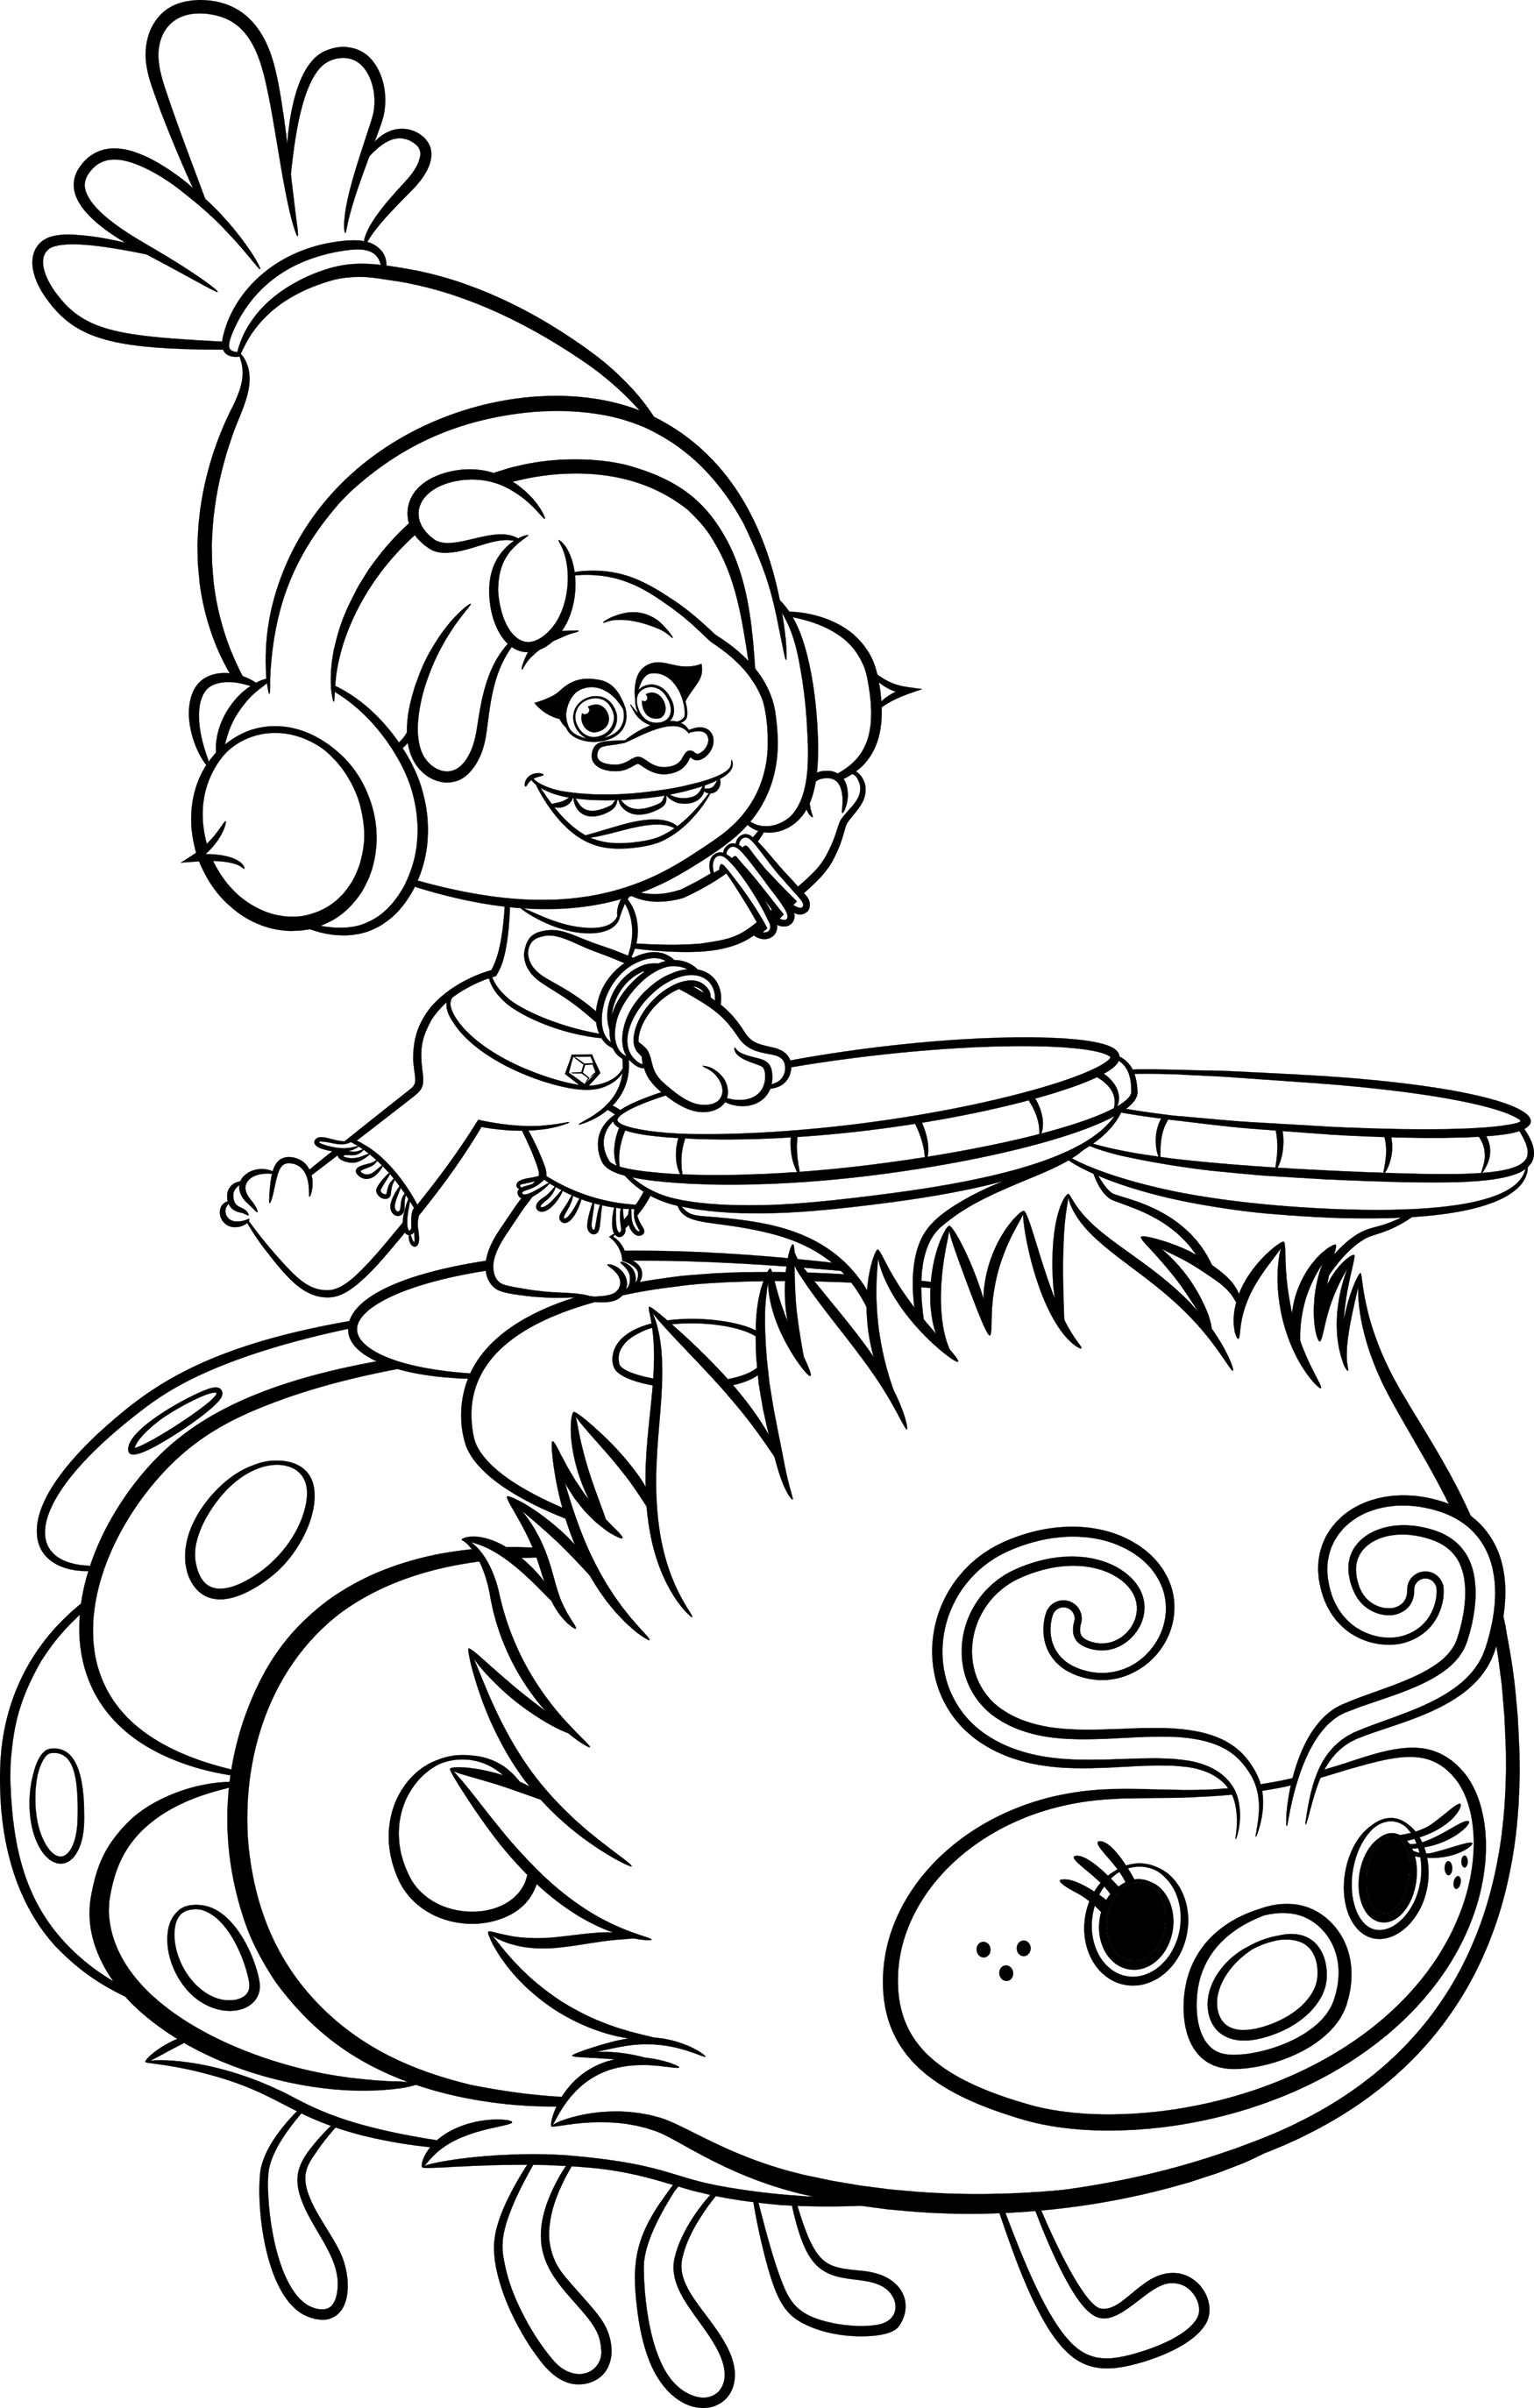 Online Coloring Pages Trolls